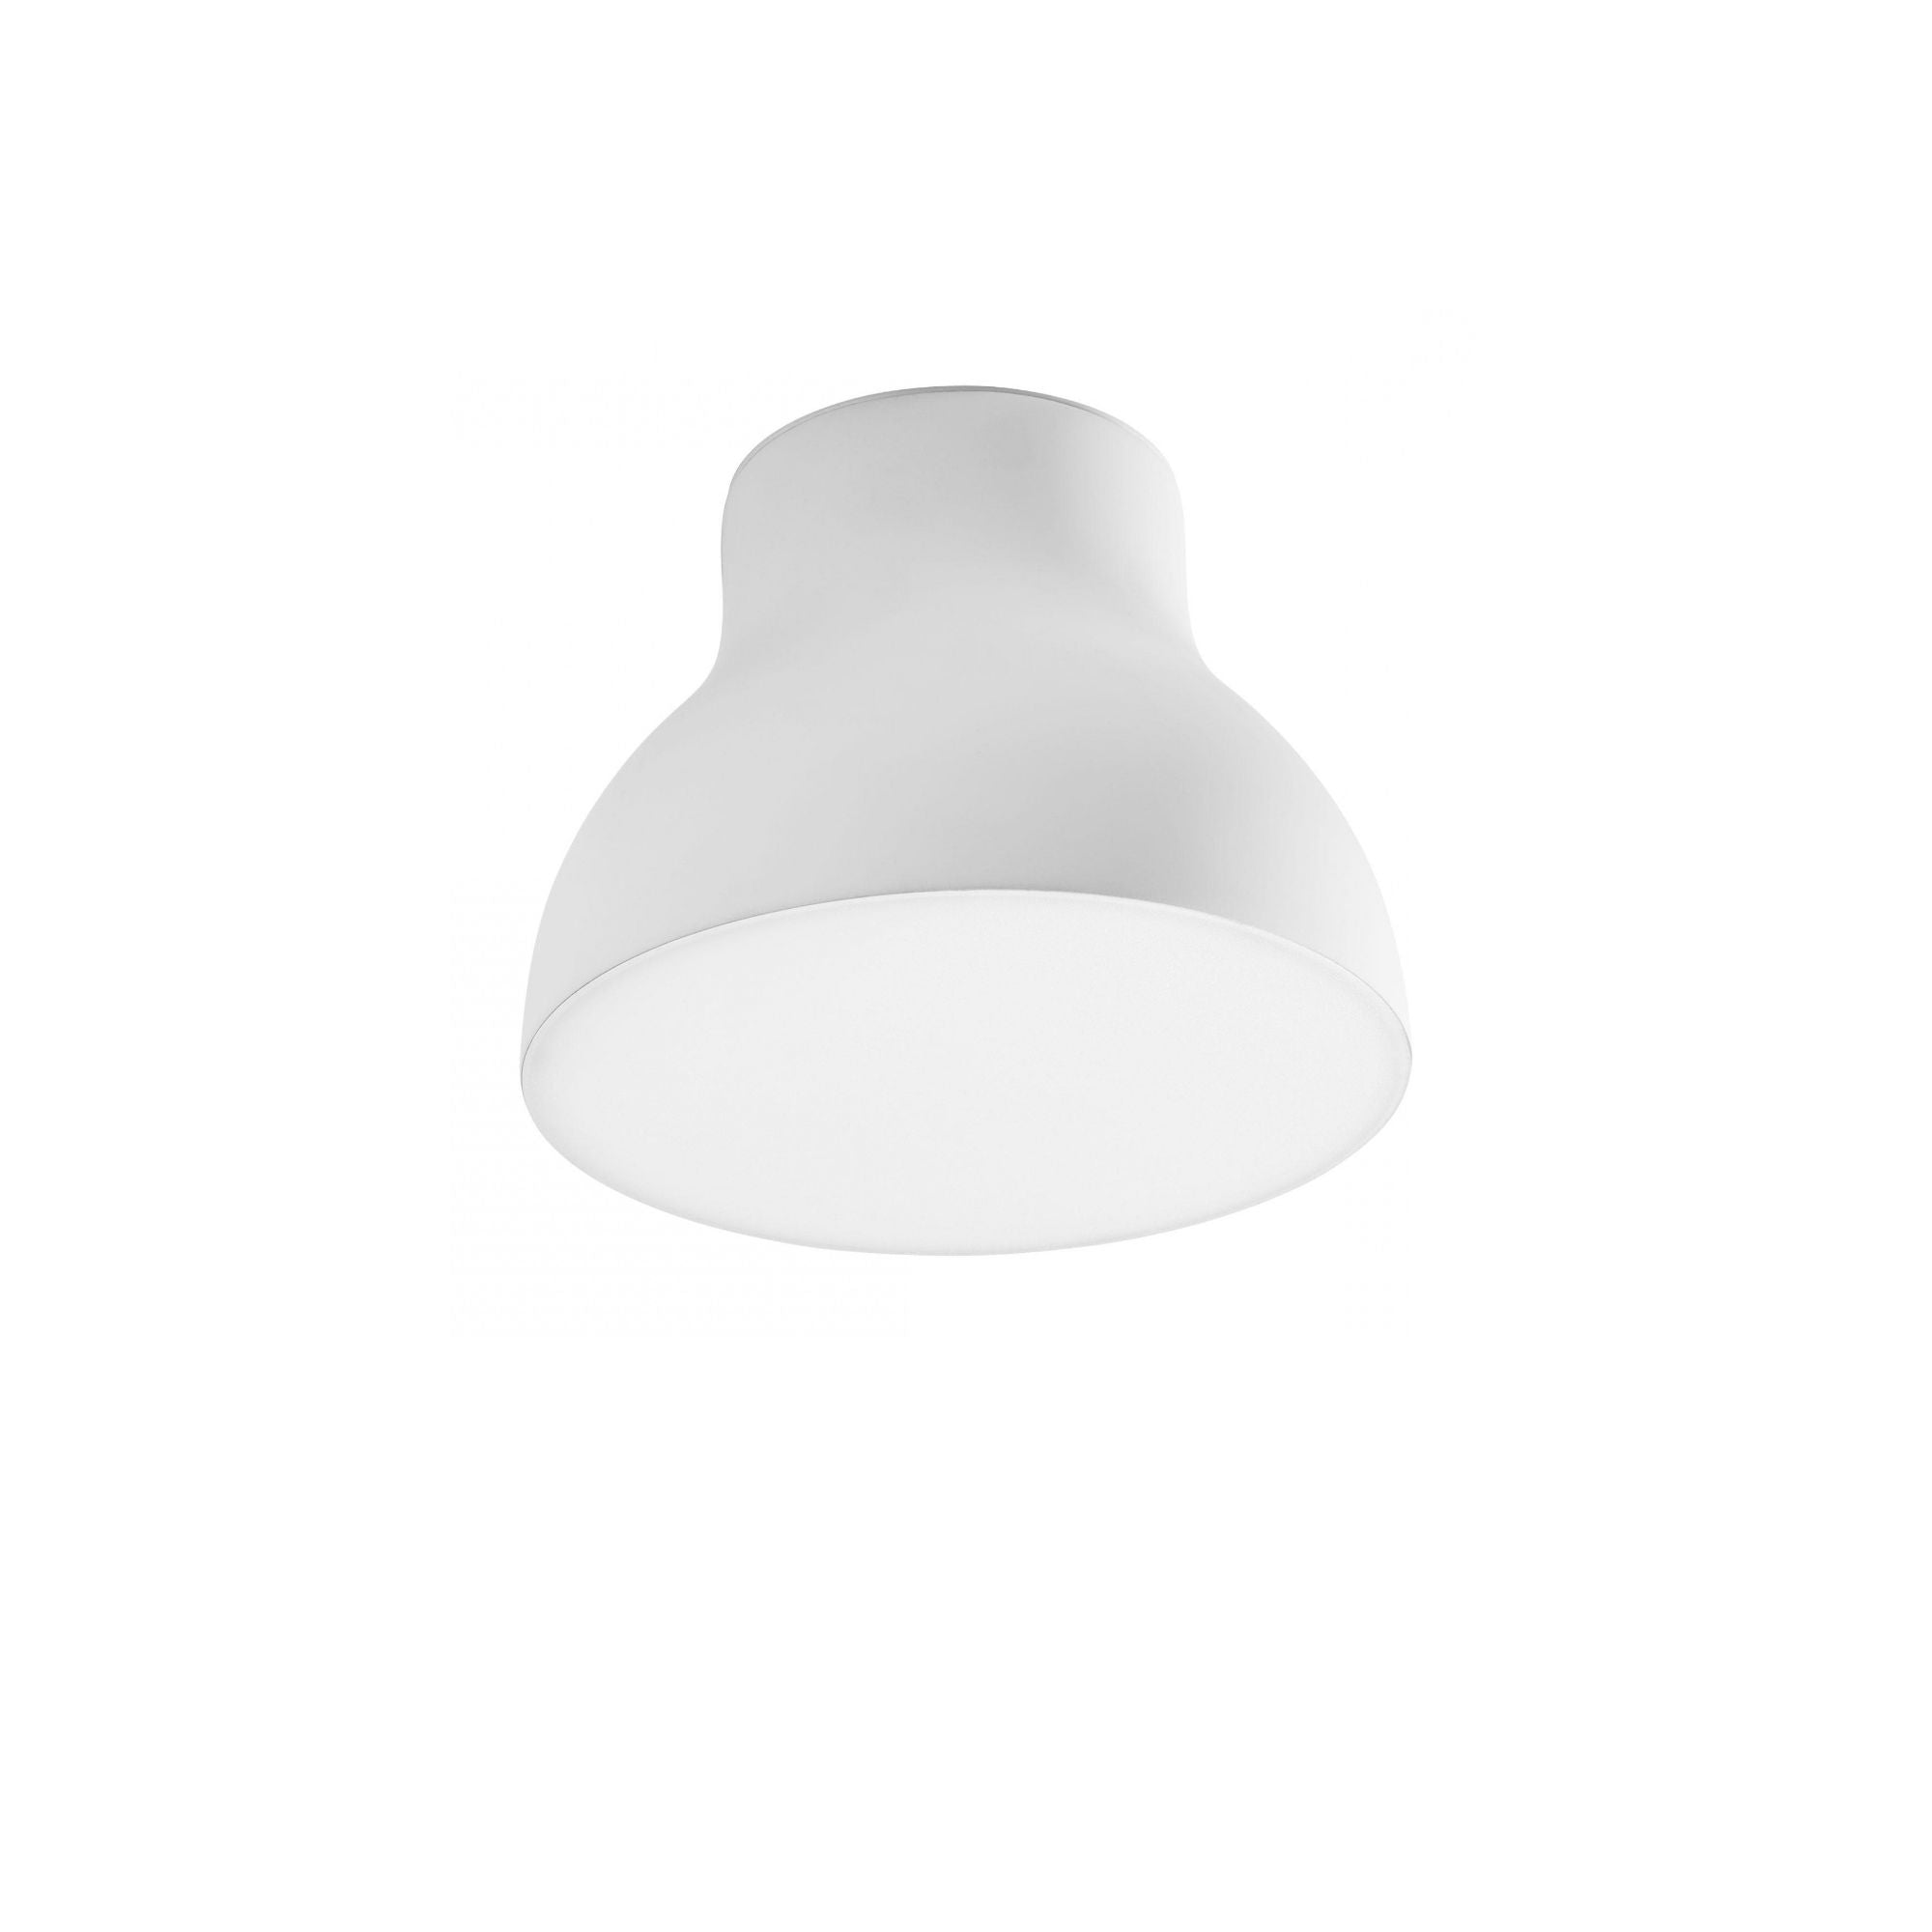 &Tradition JH11 Passepartout Ceiling/Wall Lamp , Matt White